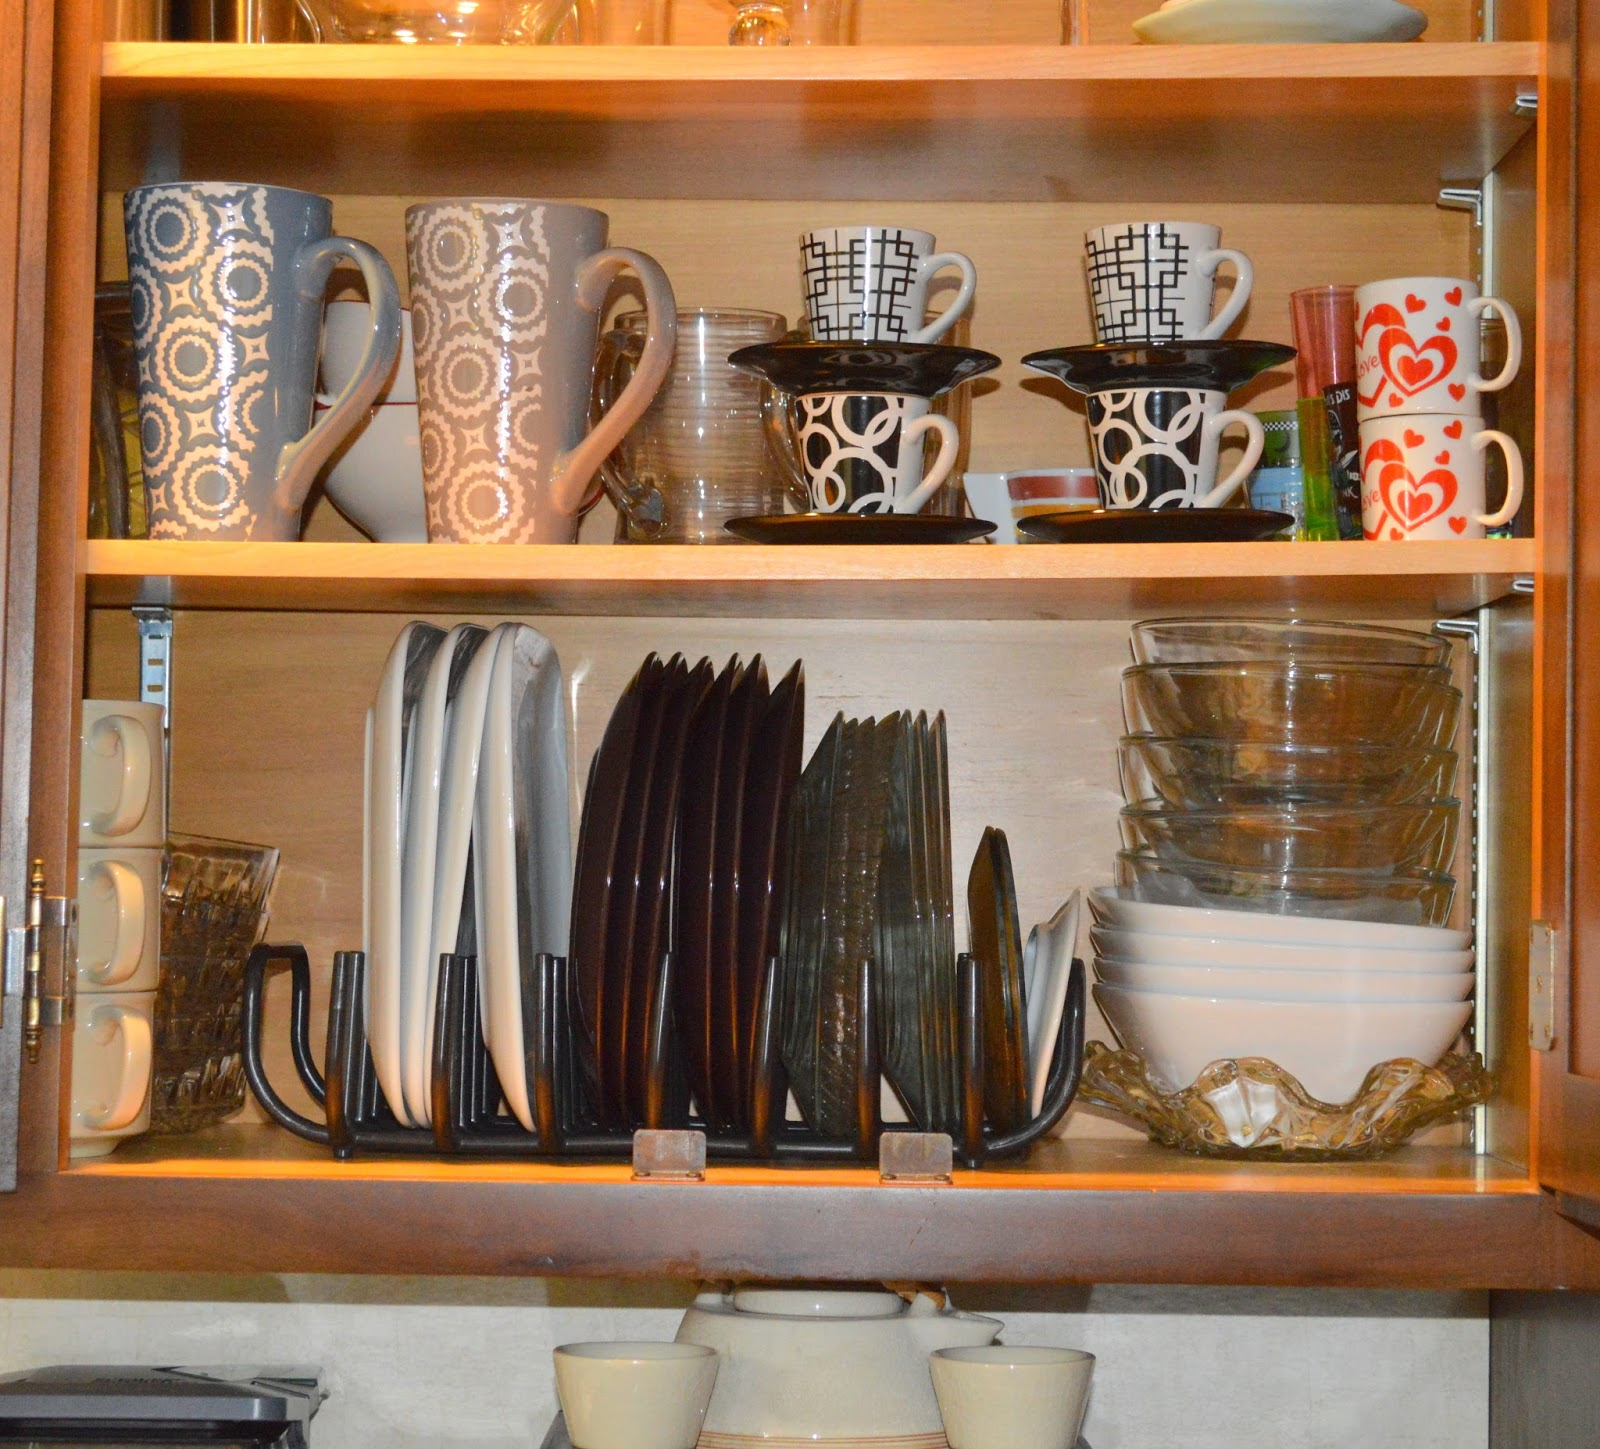 Life In Positudiness: Dish Organizer